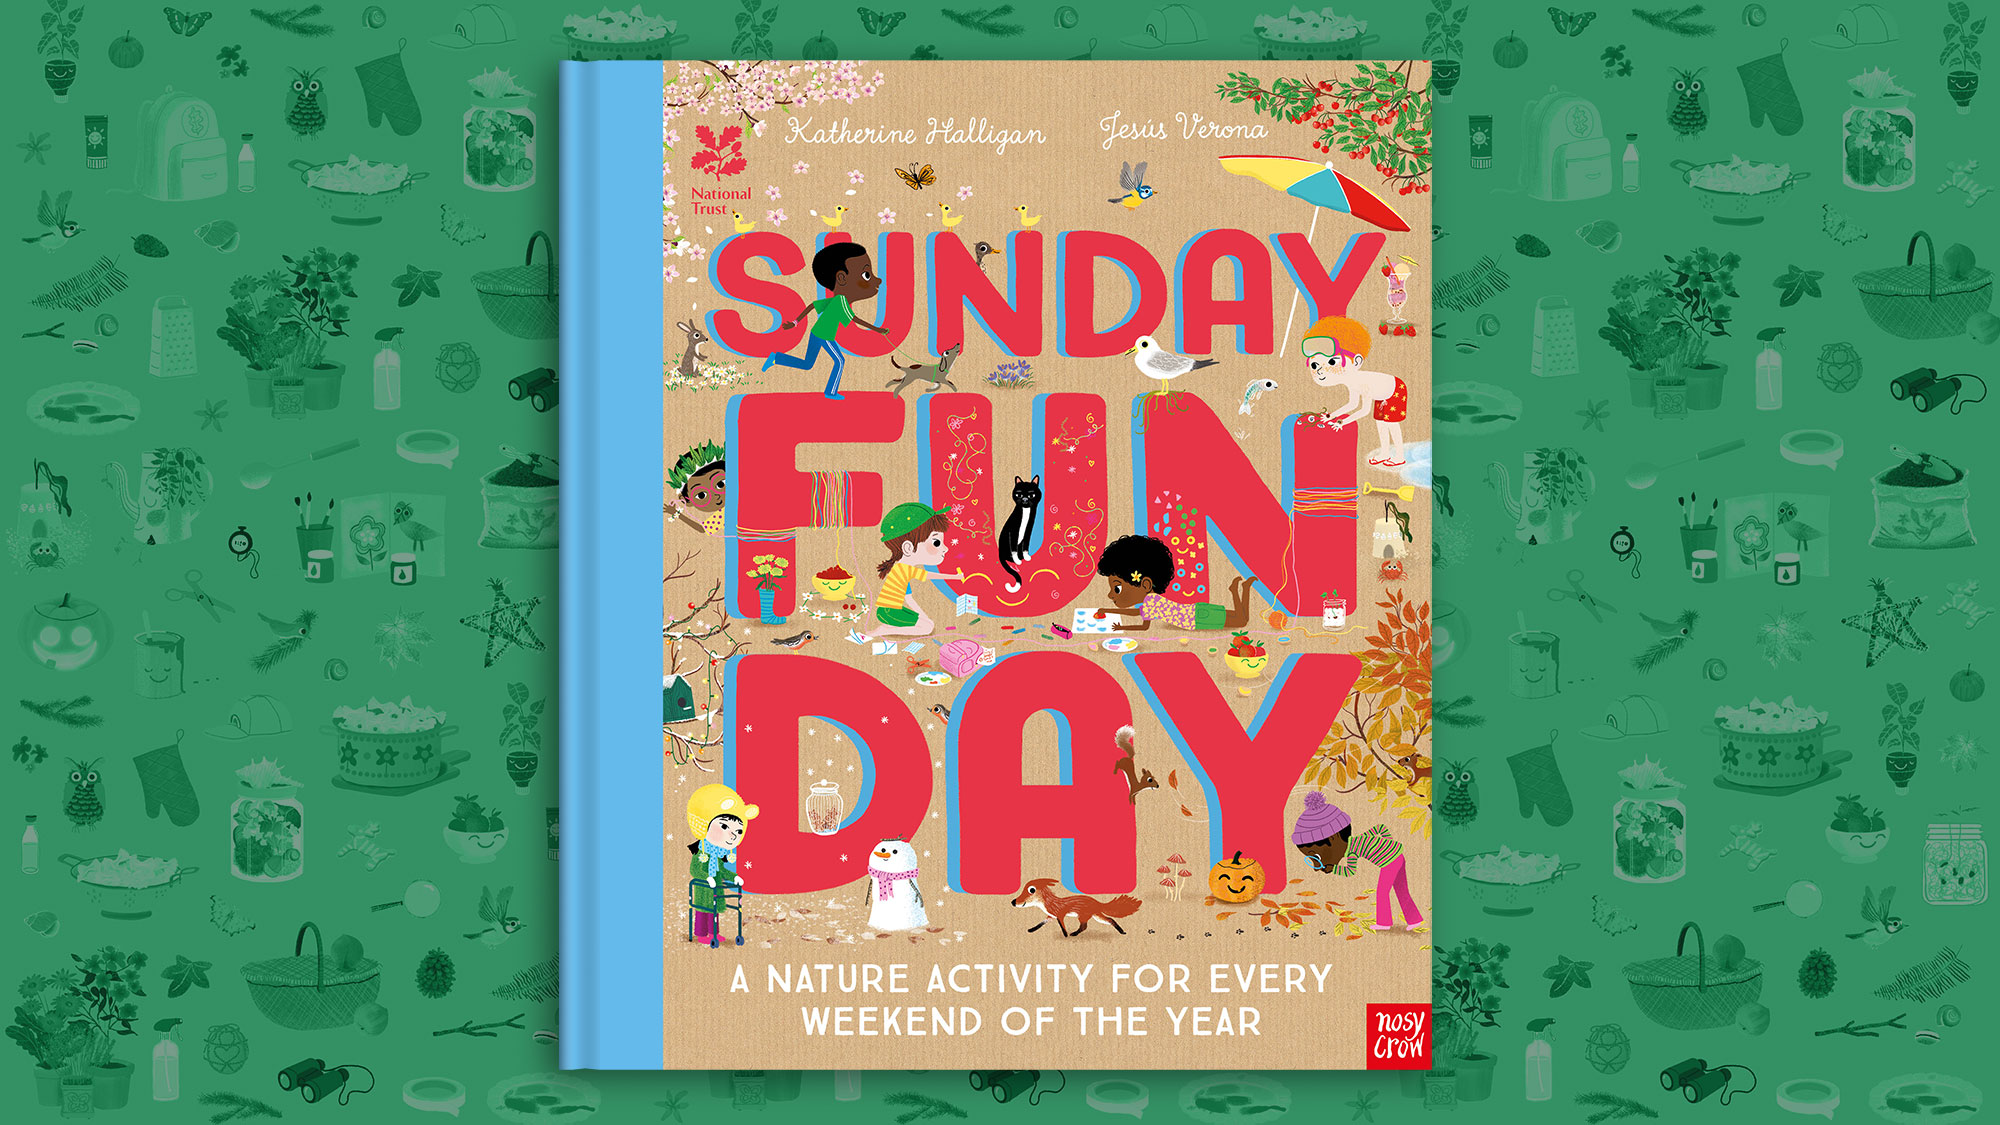 Take a look inside Sunday Funday: A Nature Activity For Every Day of the Year